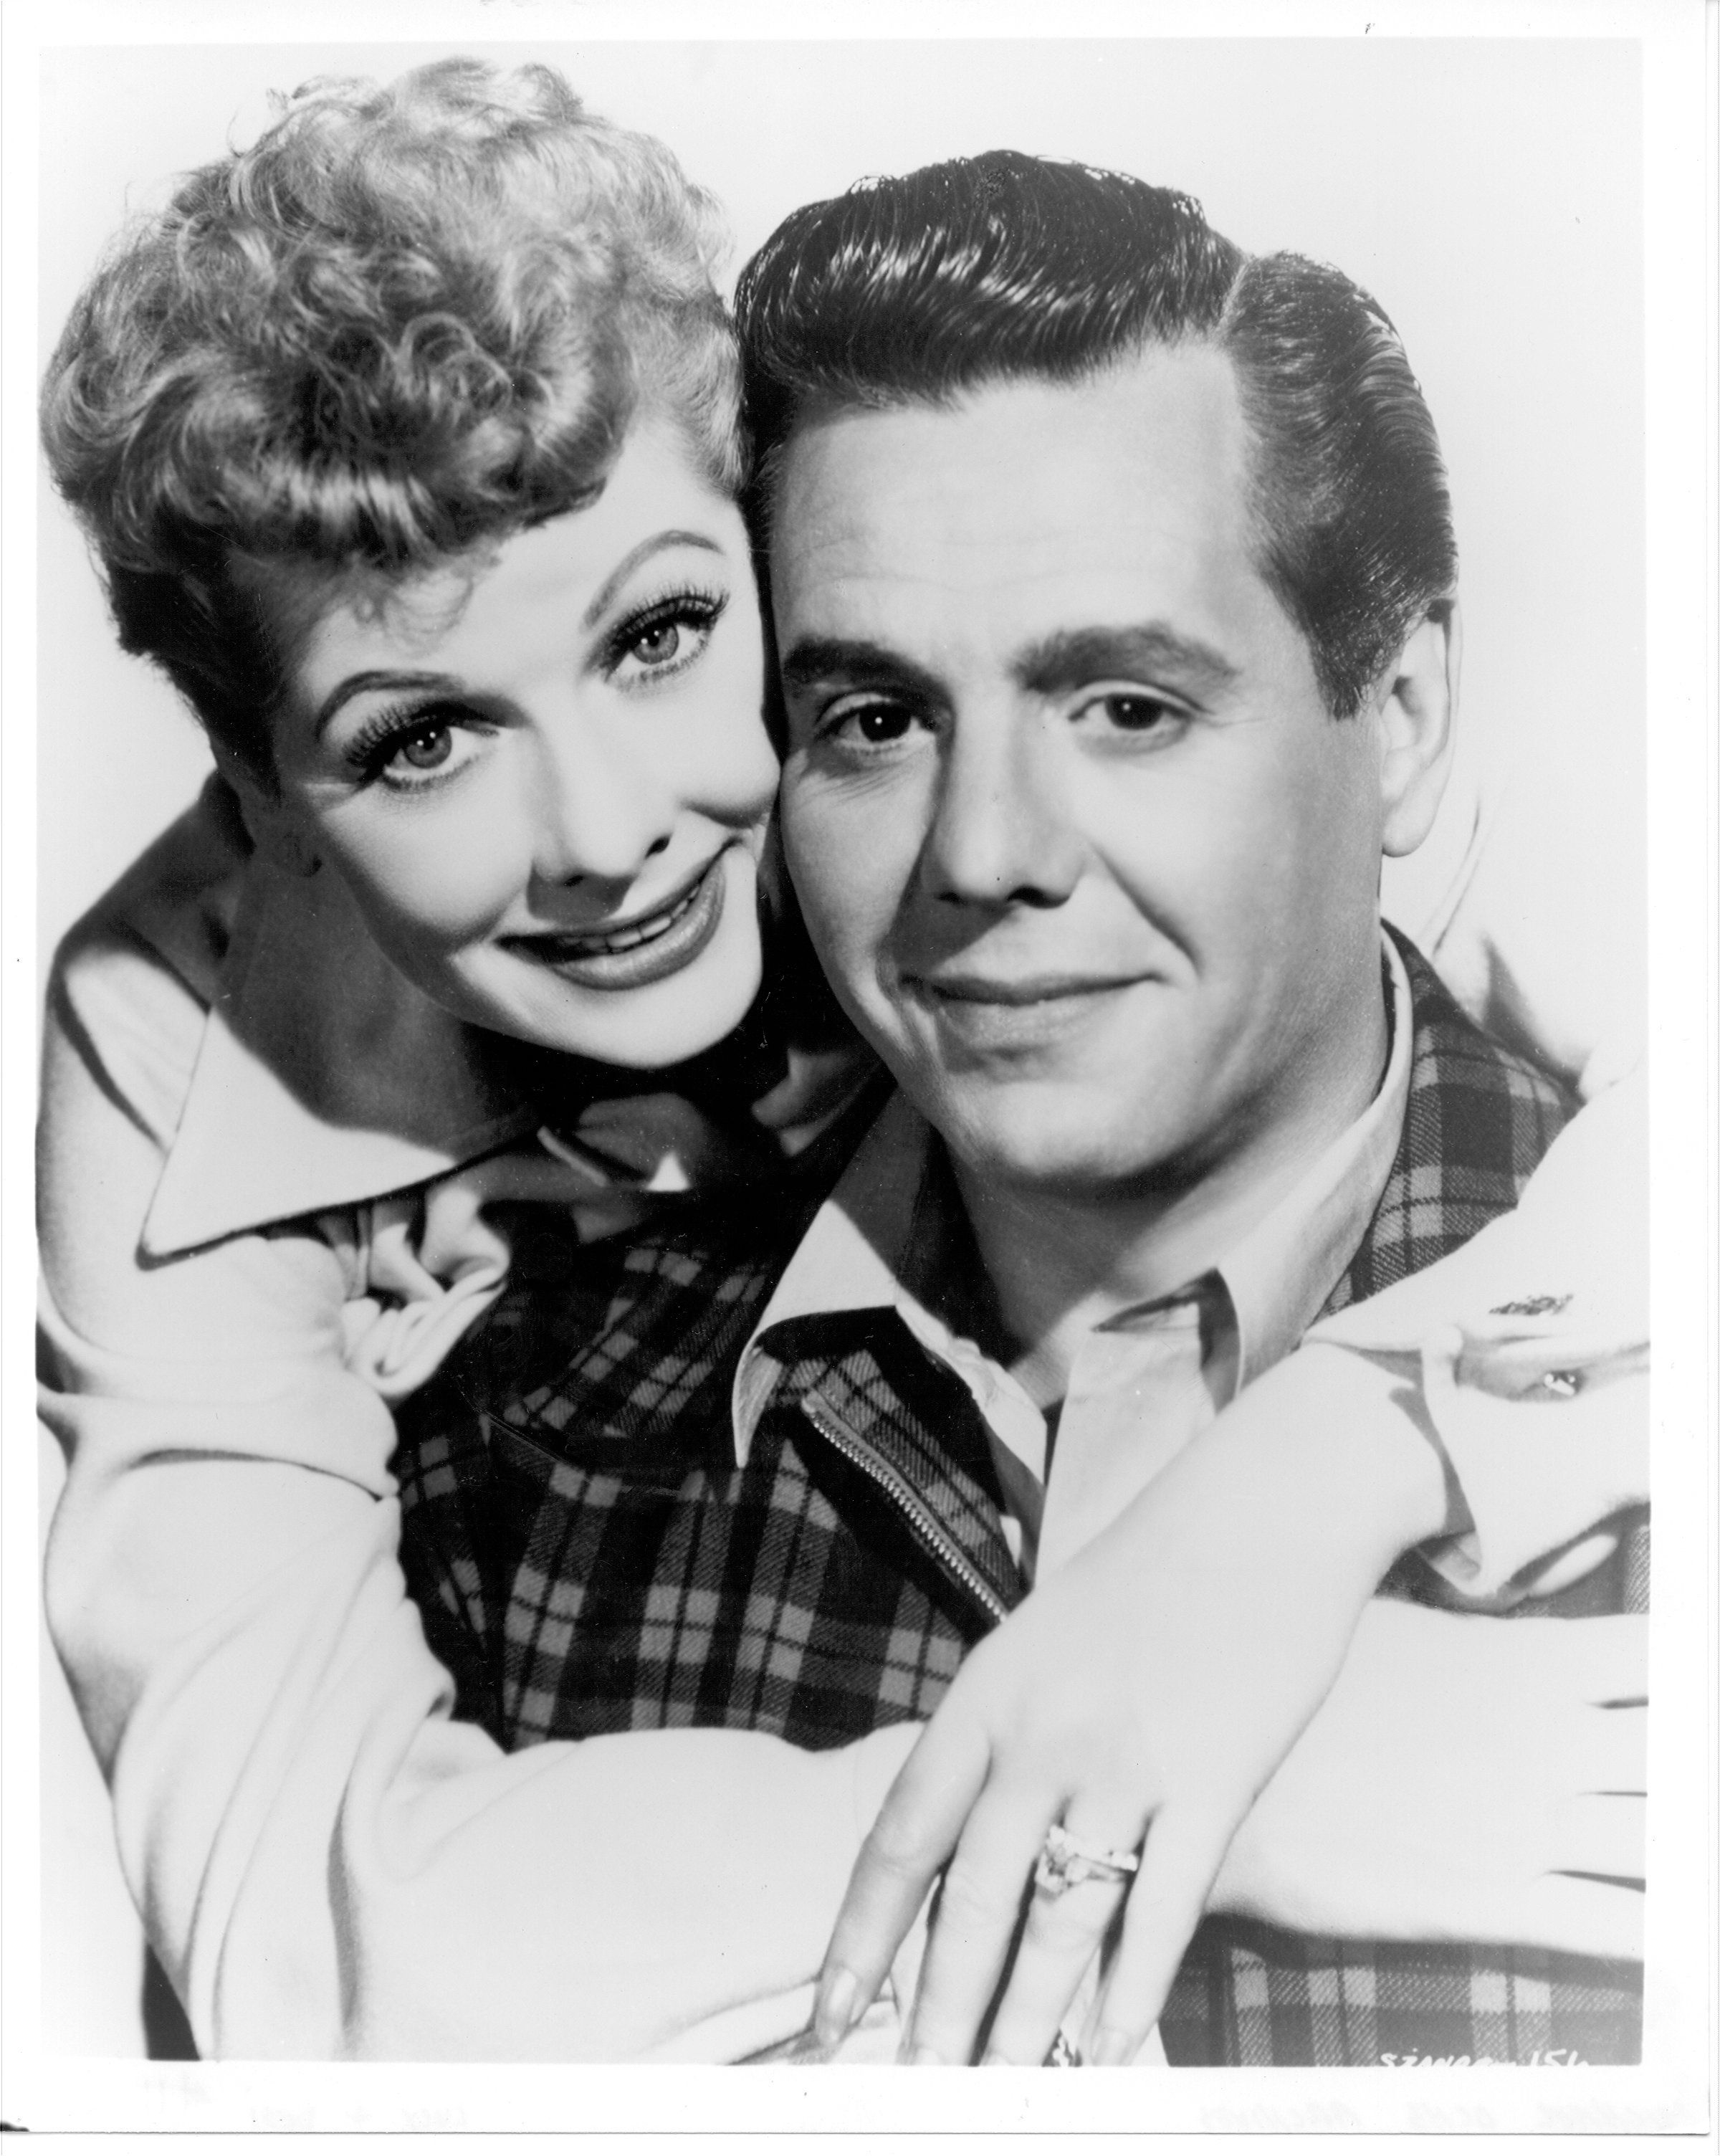 LOS ANGELES - 1956: Lucille Ball and Desi Arnaz pose for a portrait to promote their movie 'Forever Darling' in 1956 in Los Angeles, California. (Photo by Michael Ochs Archives/Getty Images)